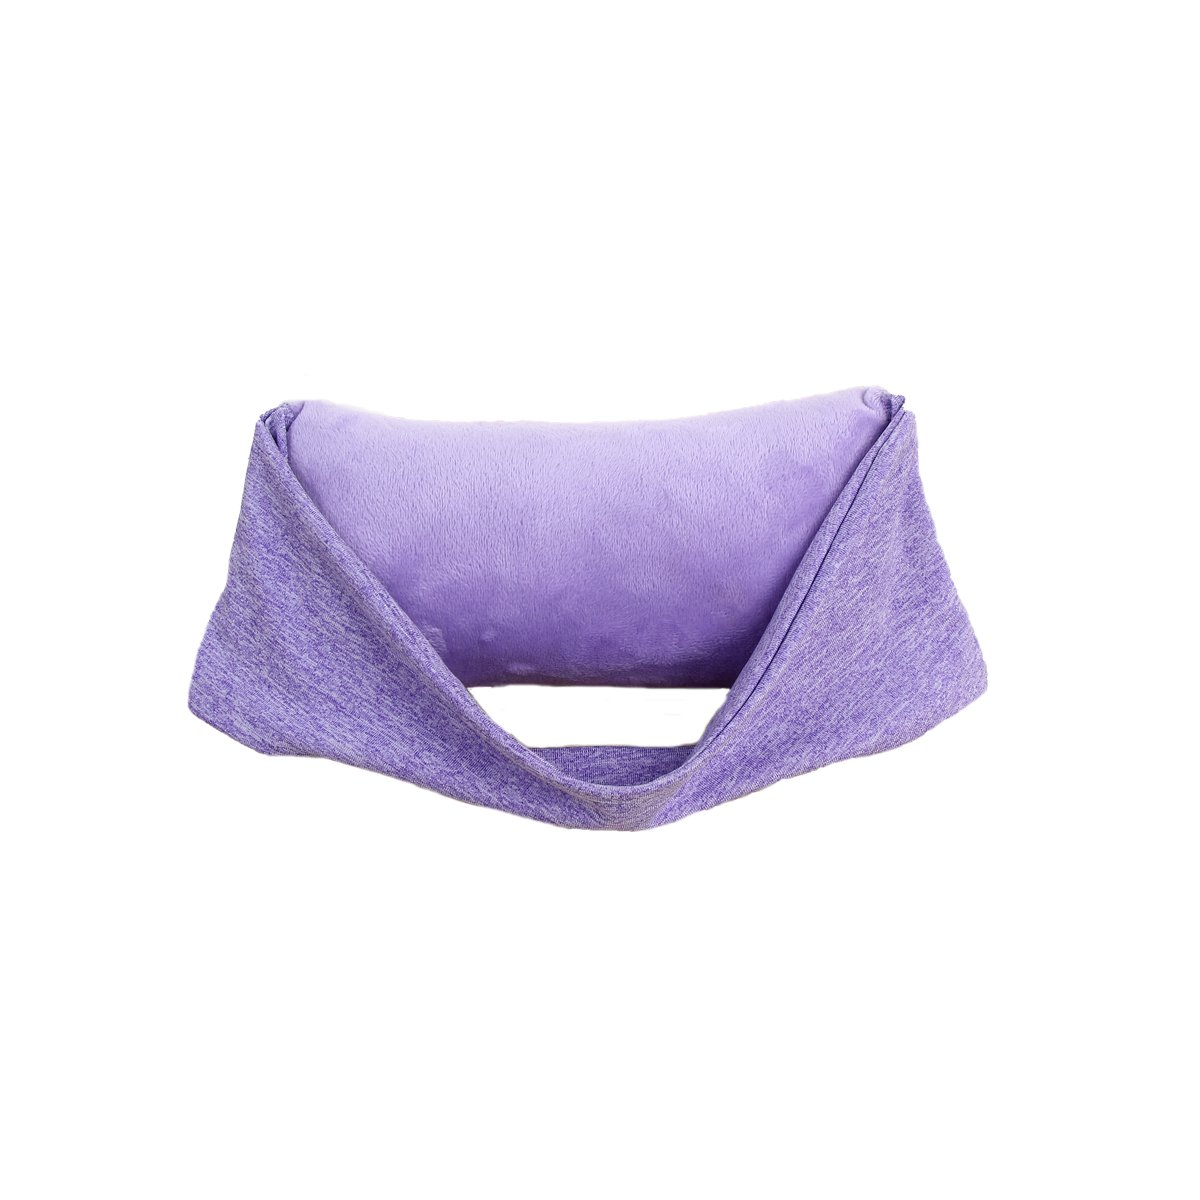 Nap/Waiting Portable and (Dark ダークグレー ダークグレー Office and (Dark for Neck Grey) Gray) Pillow Eye Travel Room/Aeroplane/Train/Cars/Camping Versatile Pillow Lightweight B07952TQ8S Mask